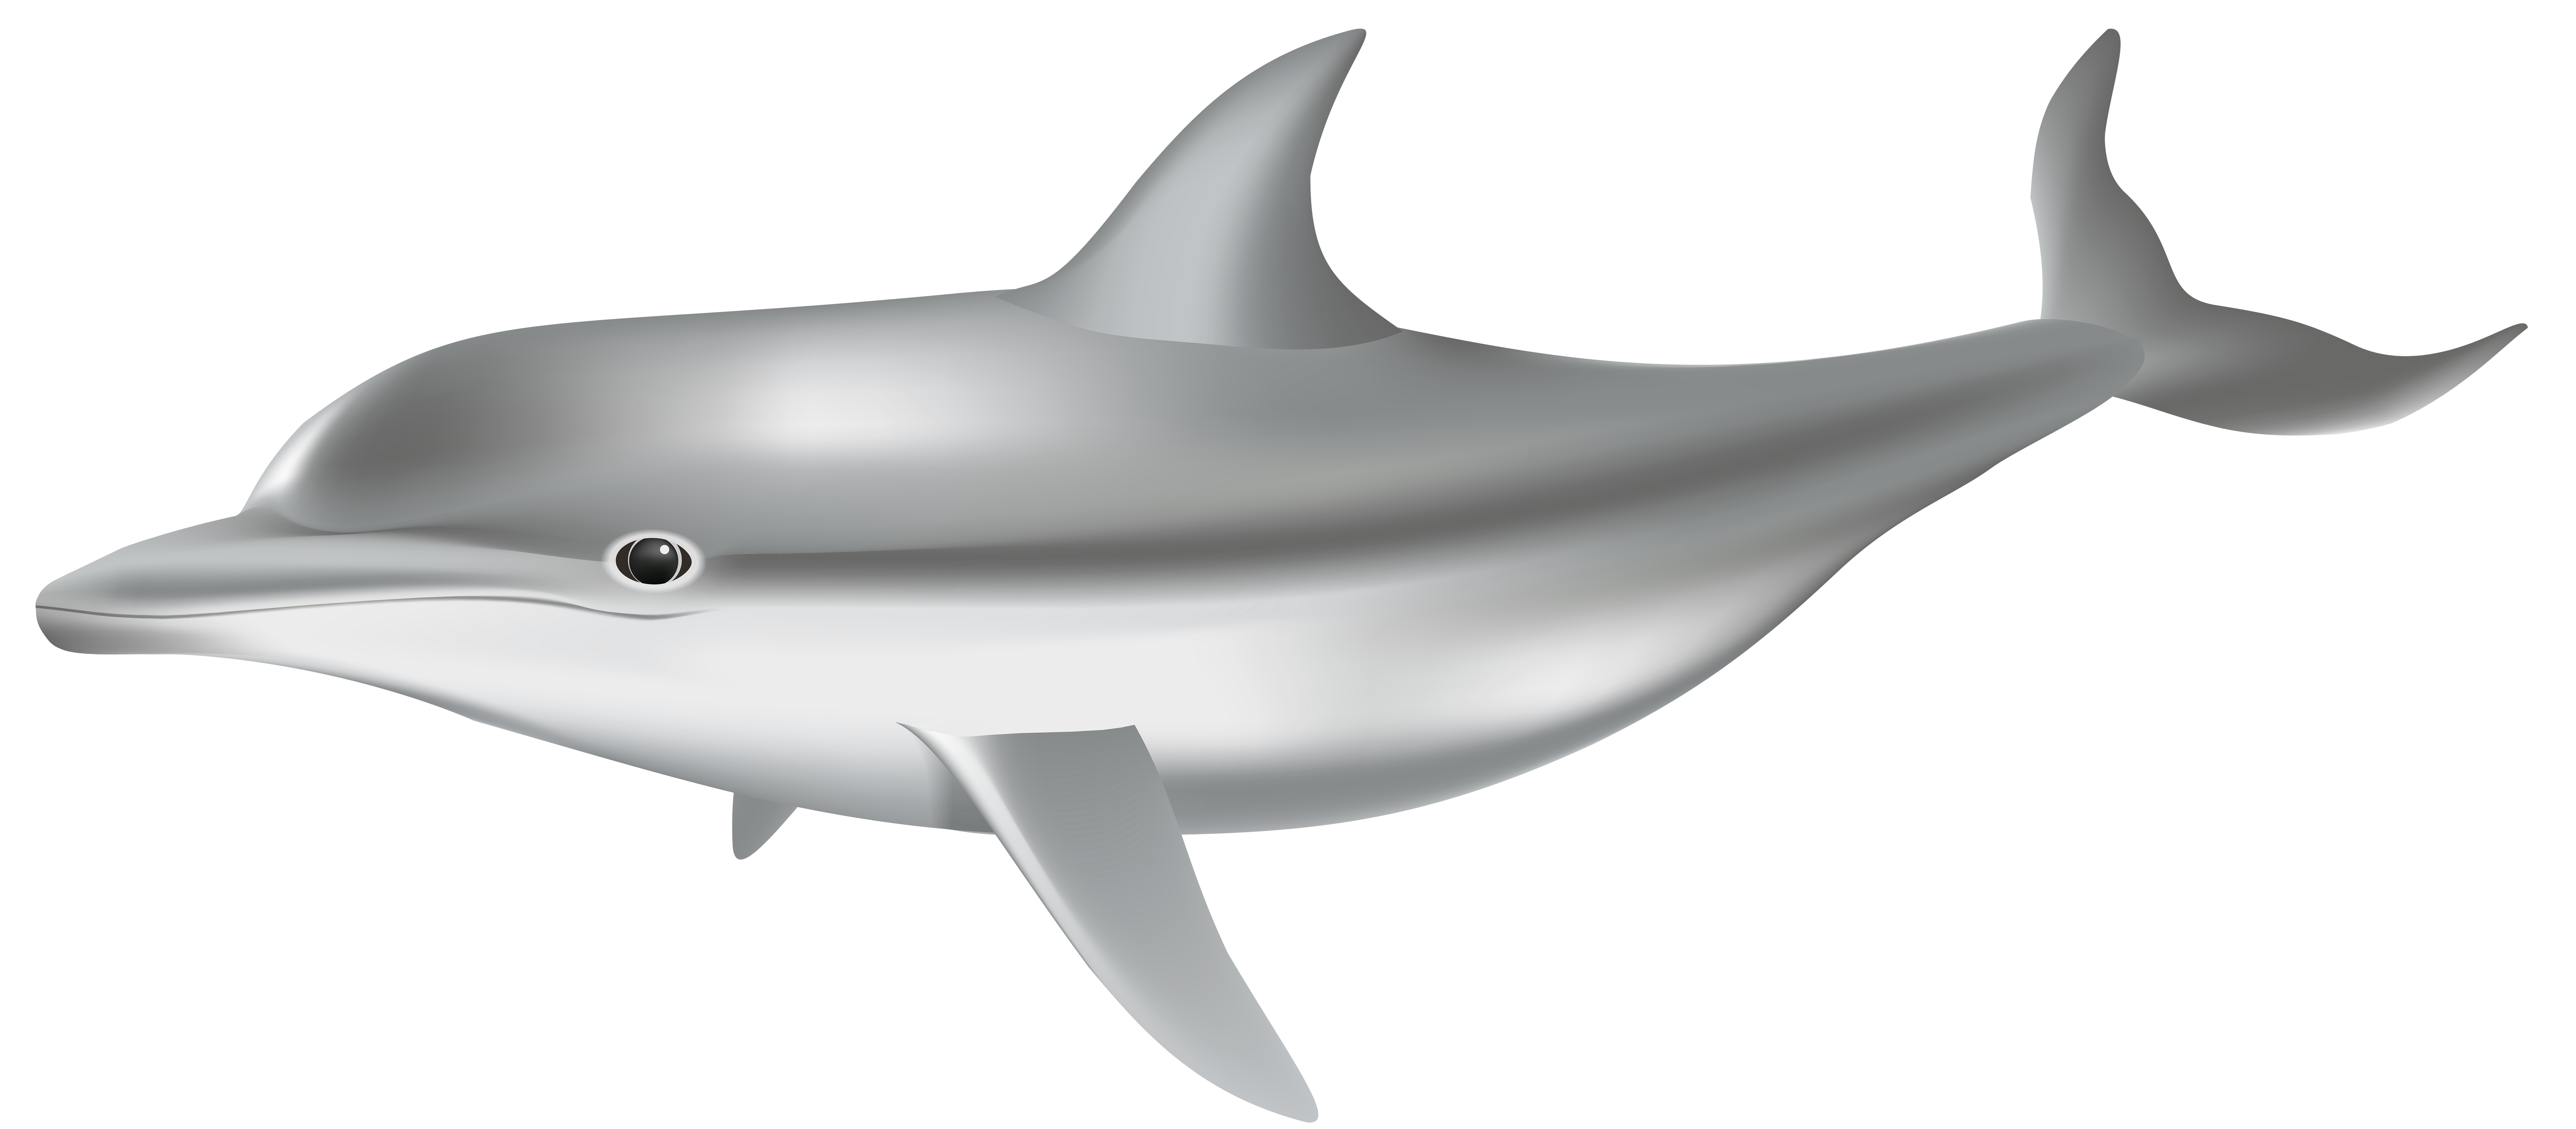 Dolphin png transparent image. Clipart shark clip art